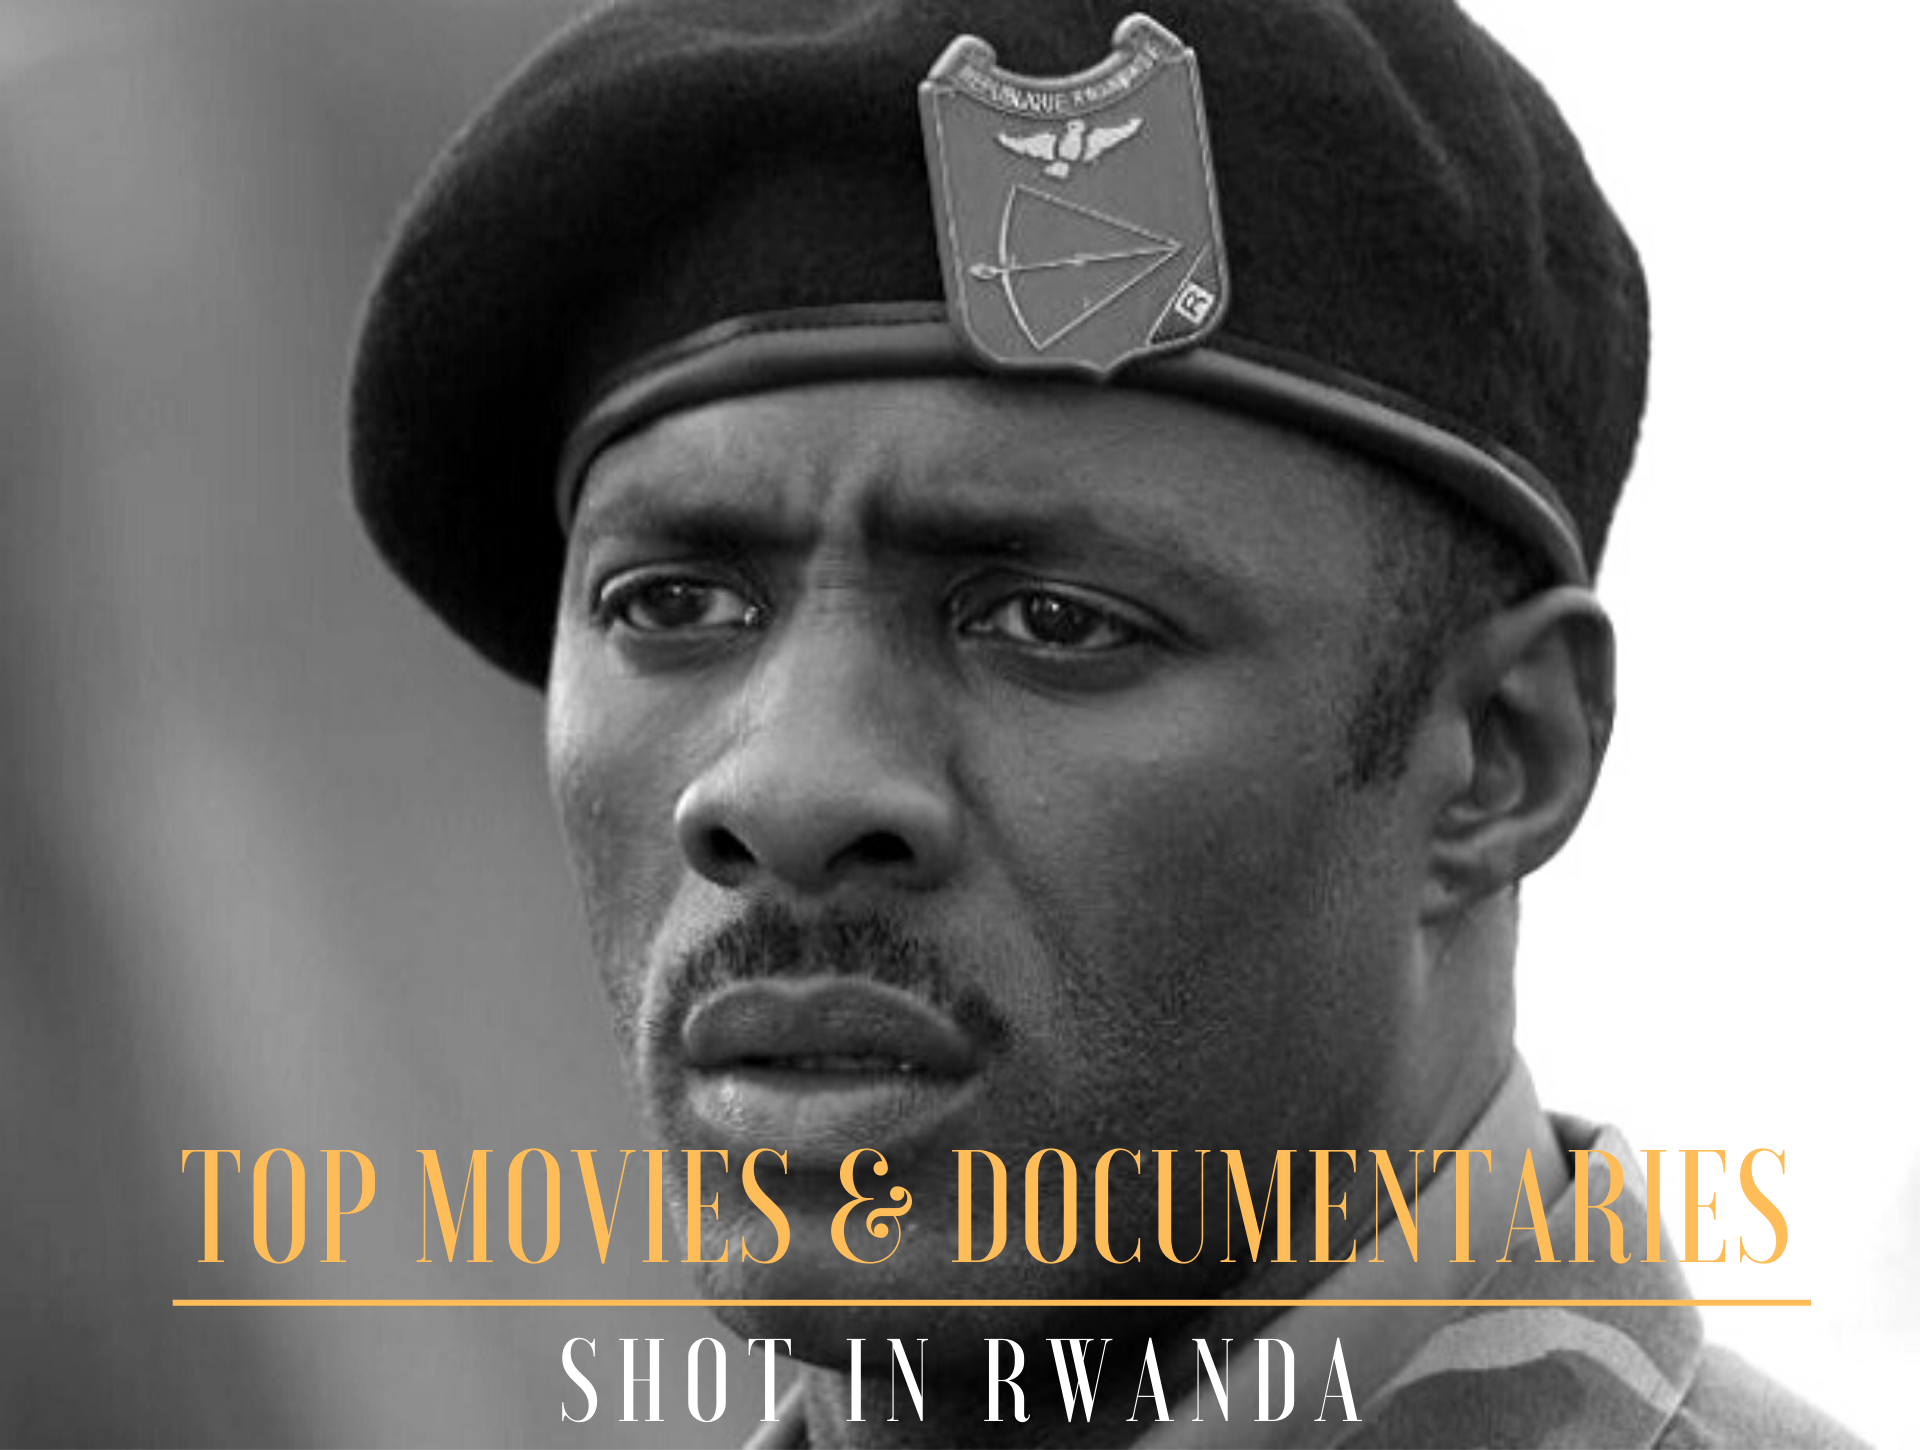 These are some of the best movies and documentaries shot in Rwanda that everyone should see at some point! #movies #documentaries #hollywood #africa #rwanda #entertainment